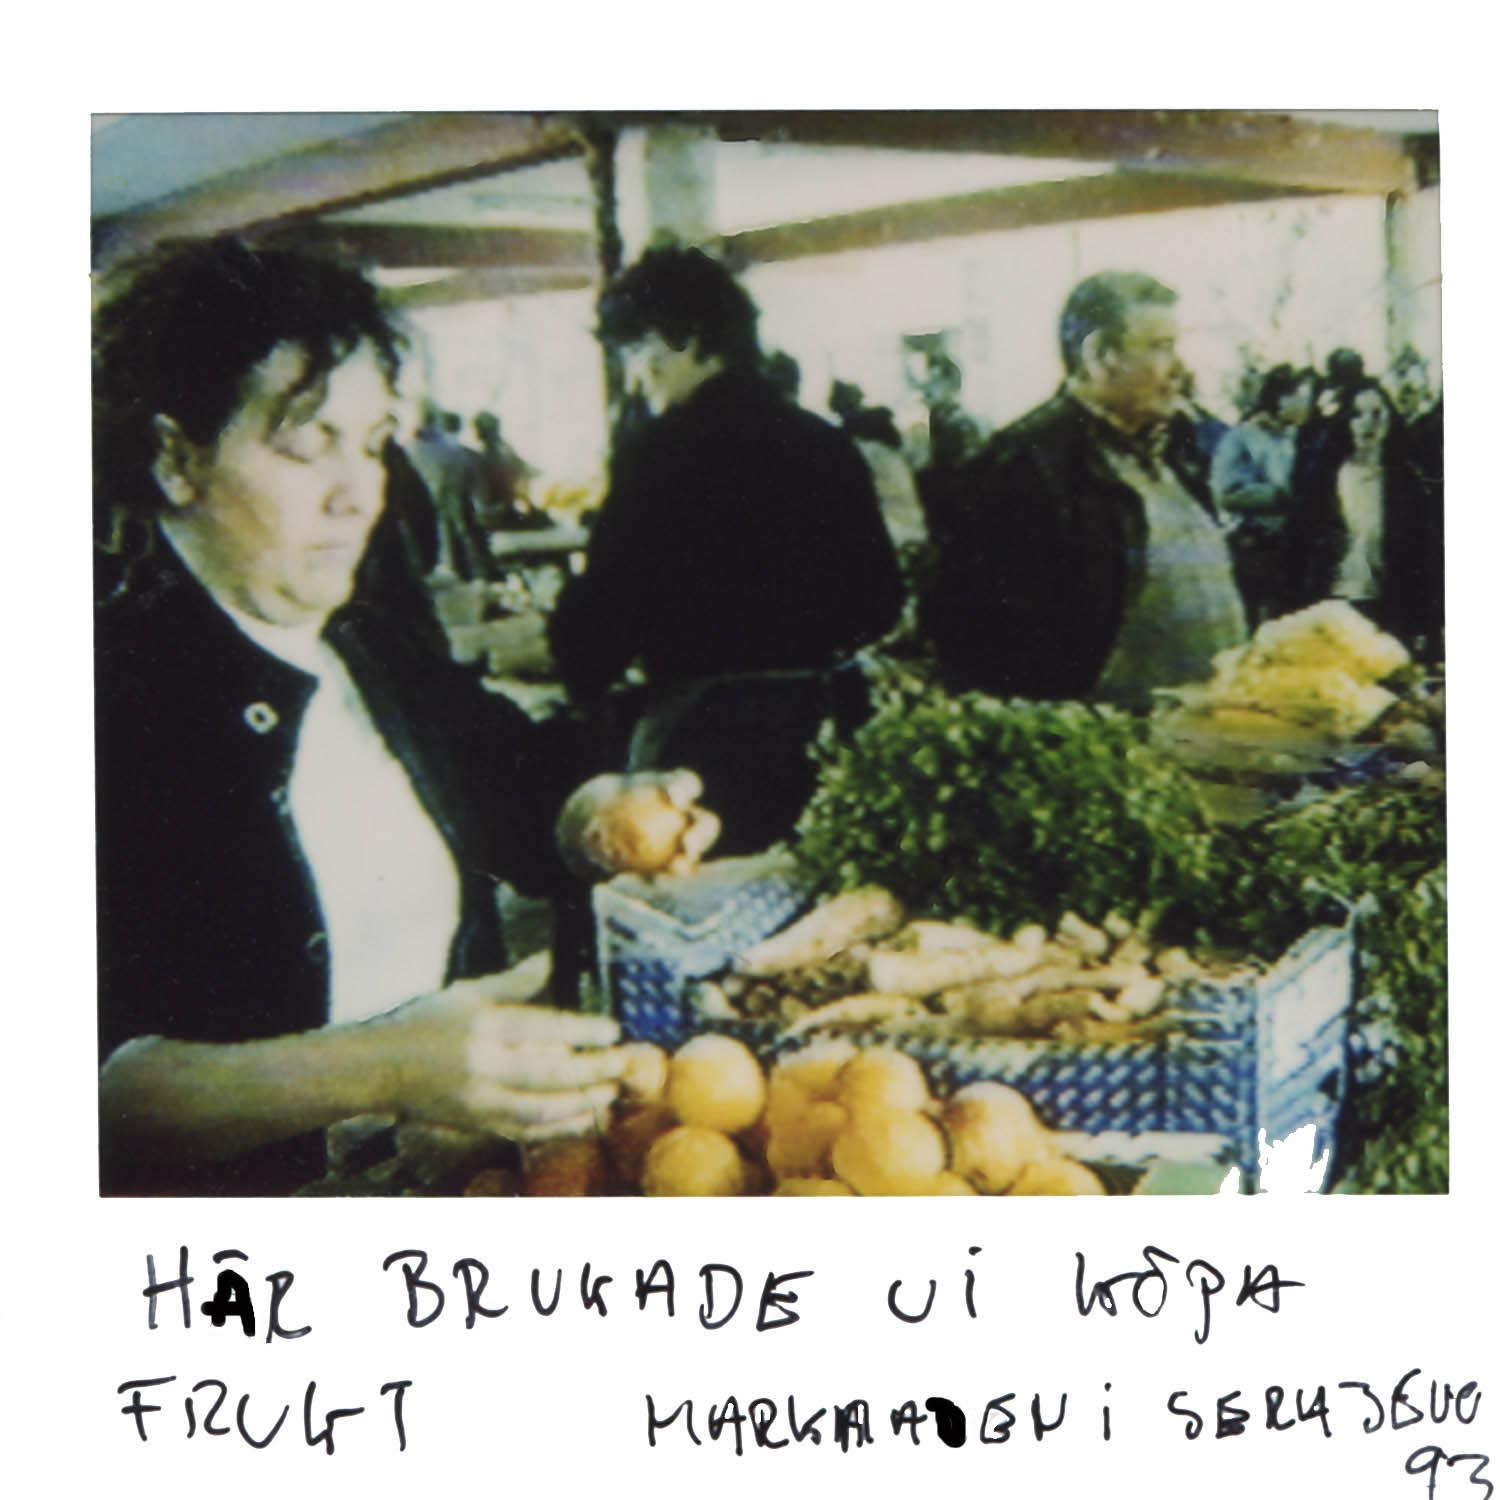 We used to buy the fruit at this market  Sarajevo -93